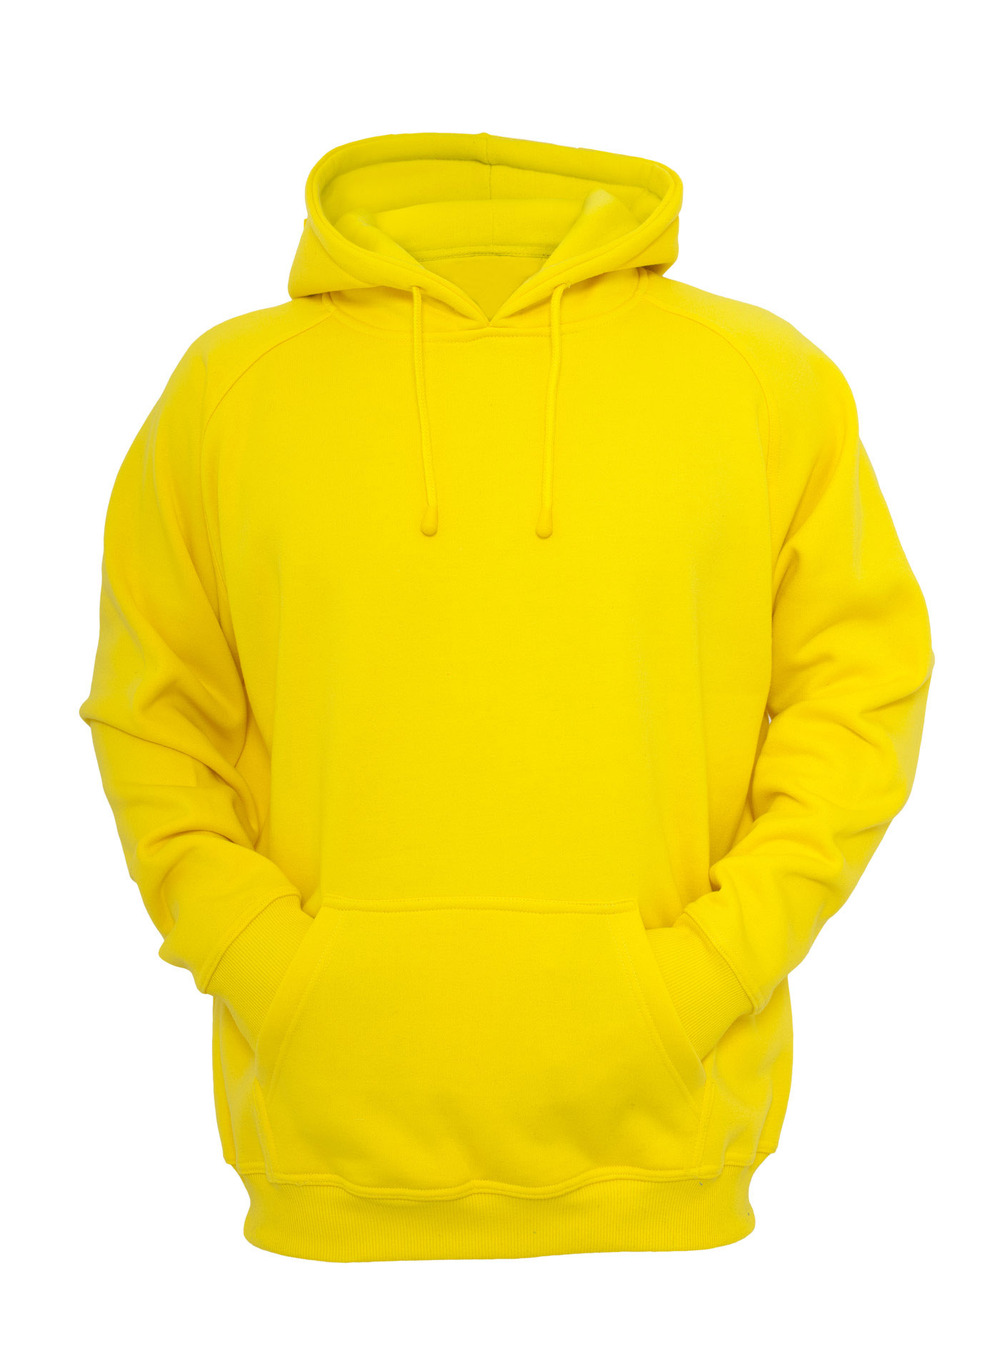 Product Description The Hanes Nano Pullover hoodie is built with the fashion-forward.